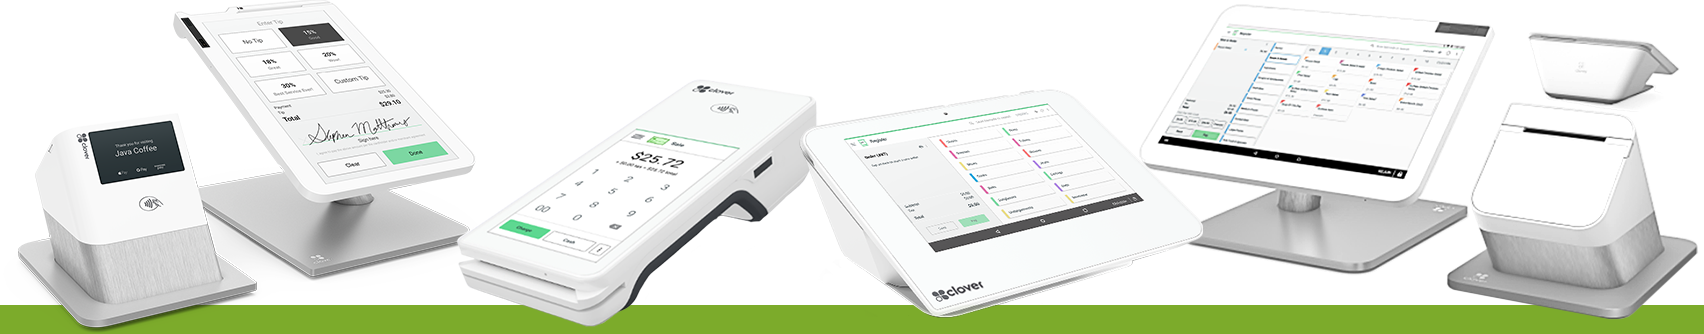 Clover Devices Credit Card Readers by The TCP STore